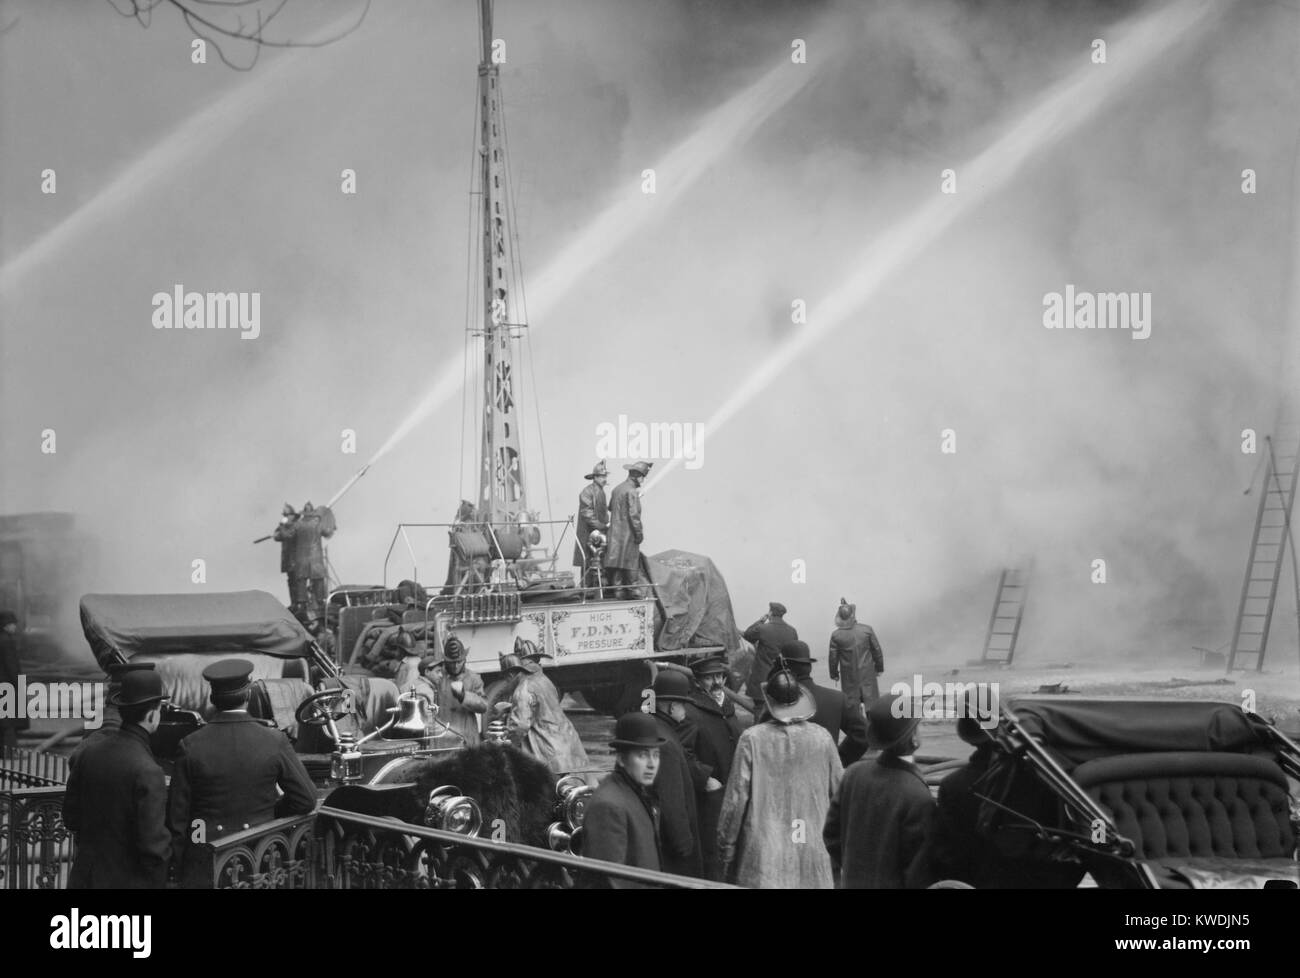 Firemen spraying three streams of high pressure water on a fire on 14th St., NYC, Dec. 1909 (BSLOC_2017_17_102) - Stock Image